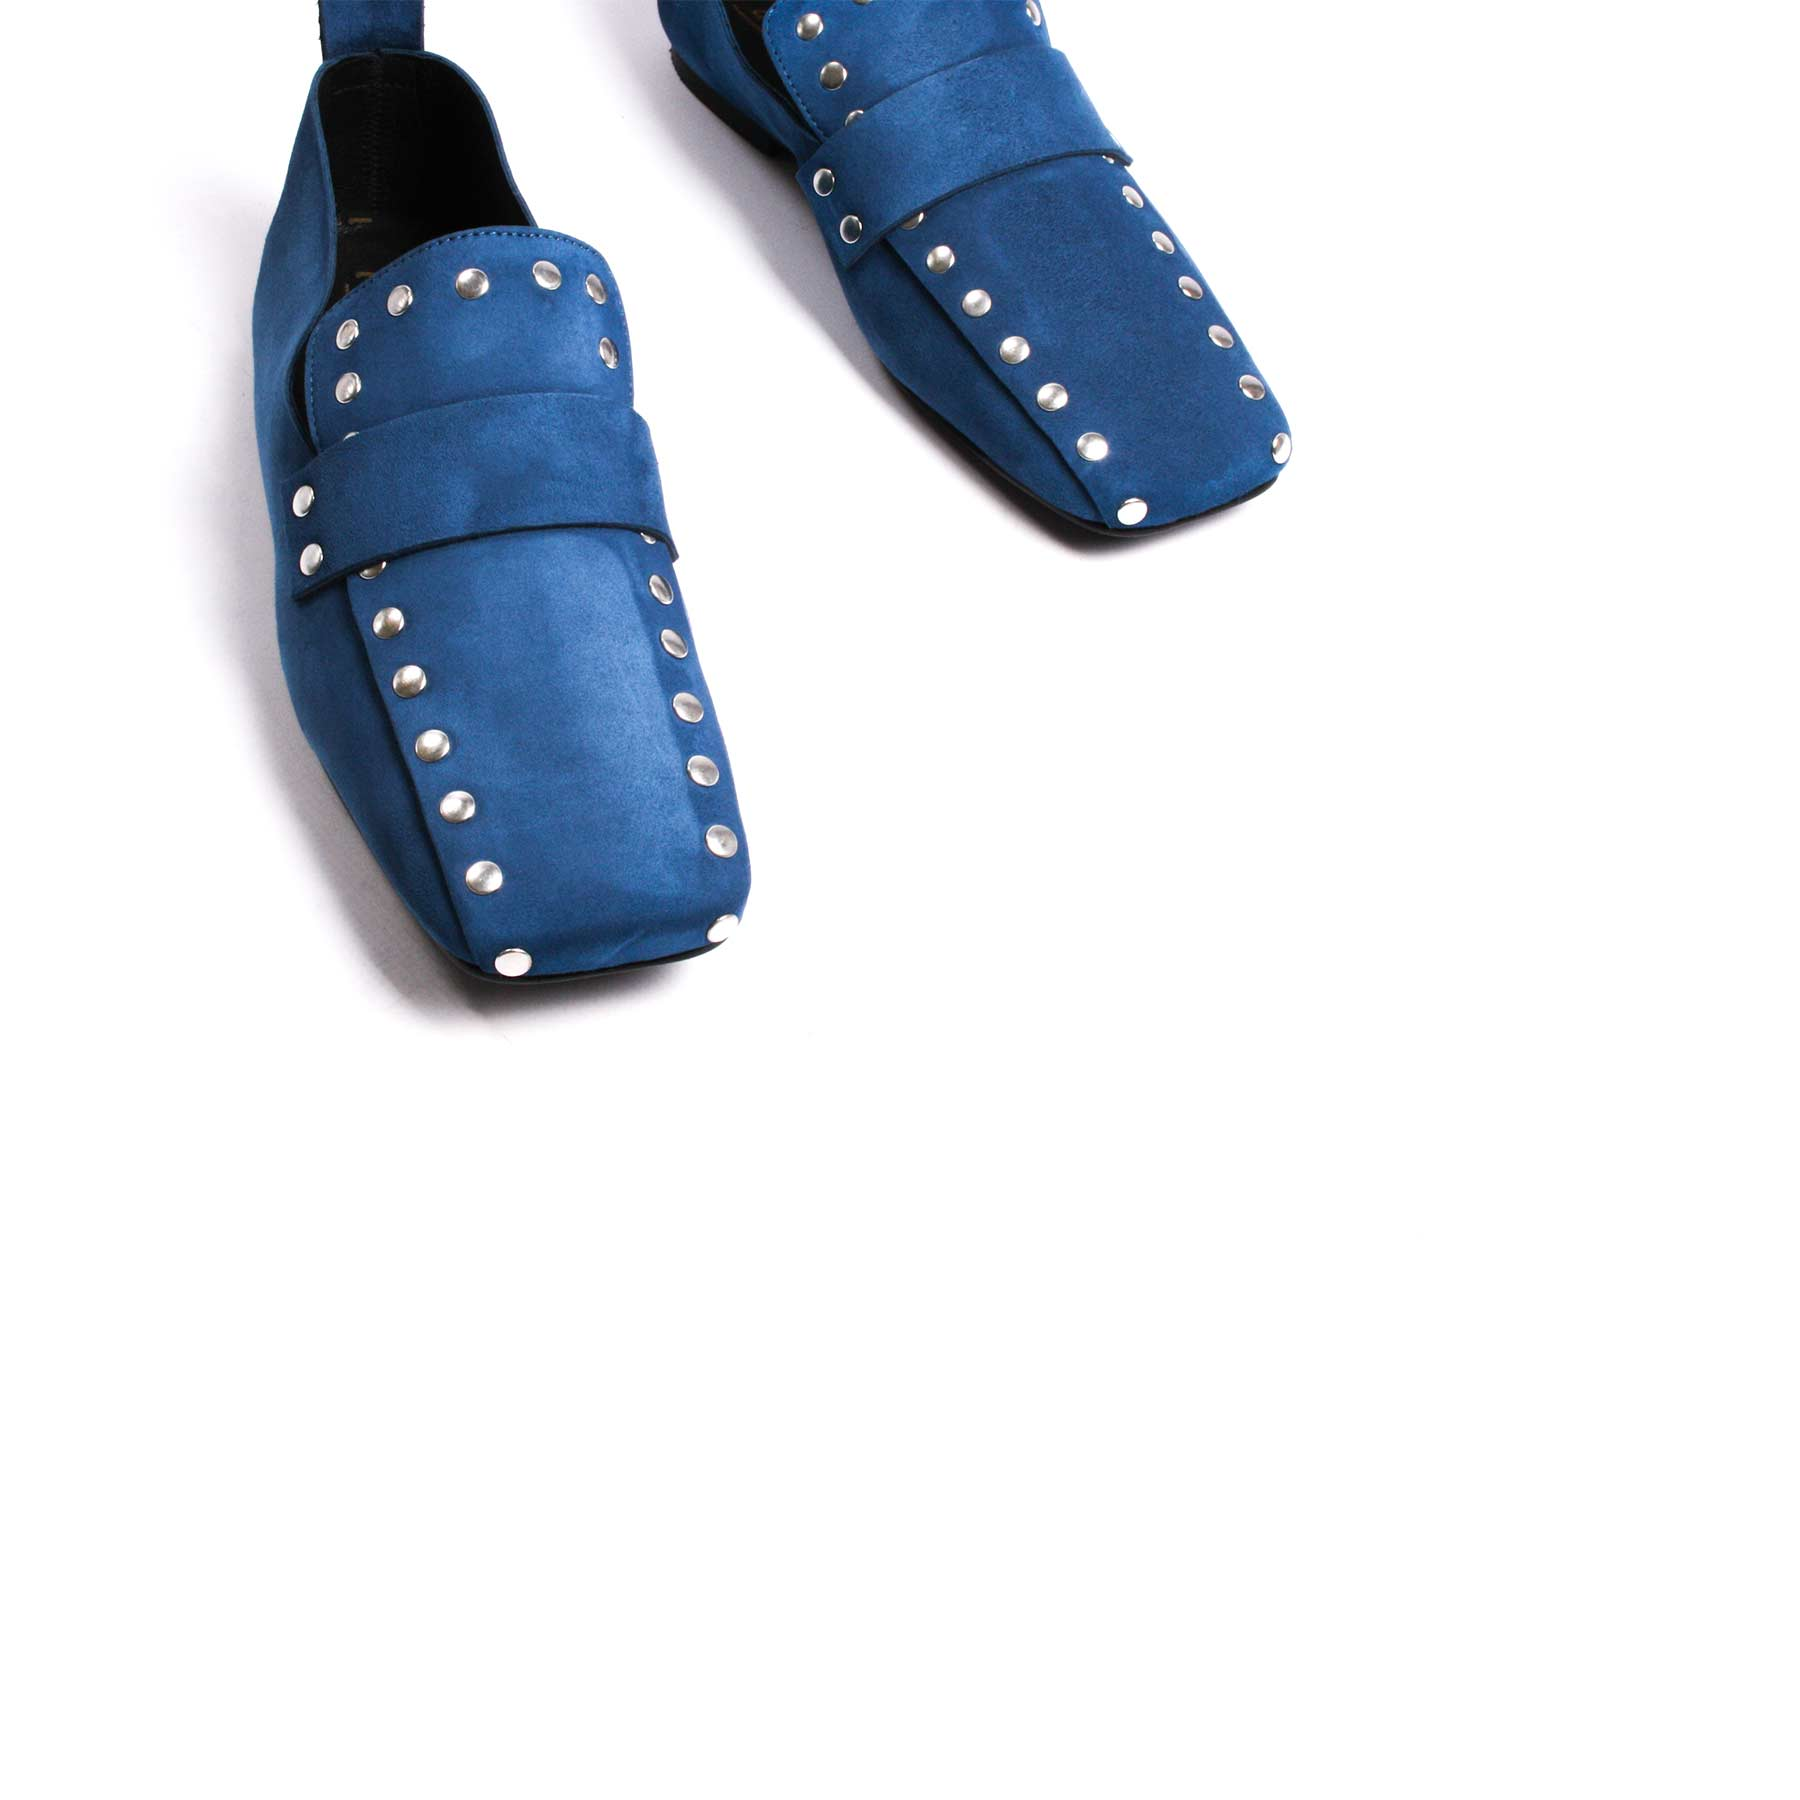 Shoes, Ego Blue Suede - Lintervalle shoes for woman